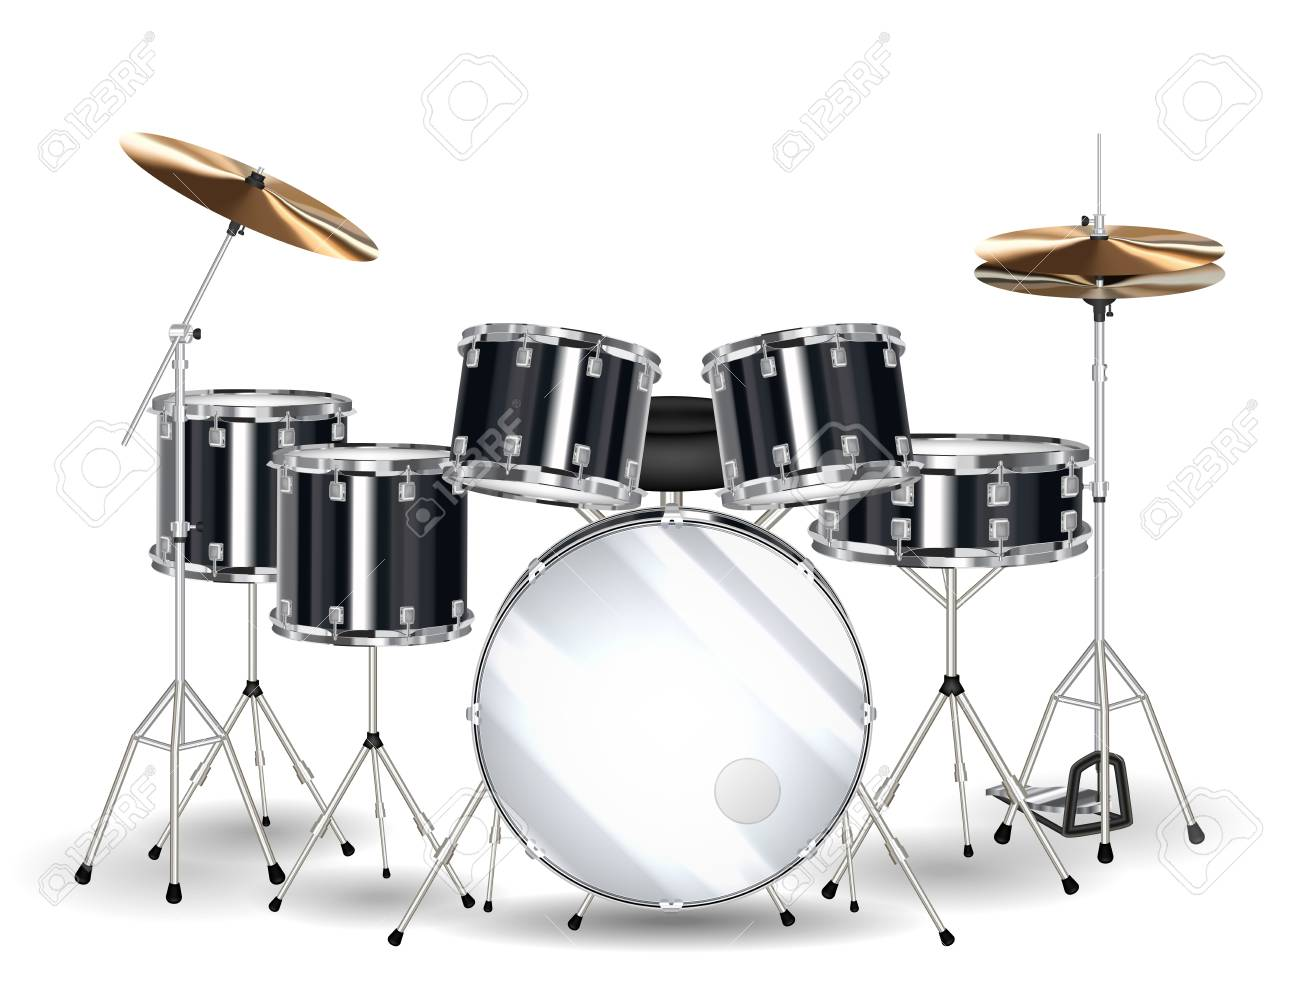 Real Black Drum Set On A White Background Royalty Cliparts 1300x1003